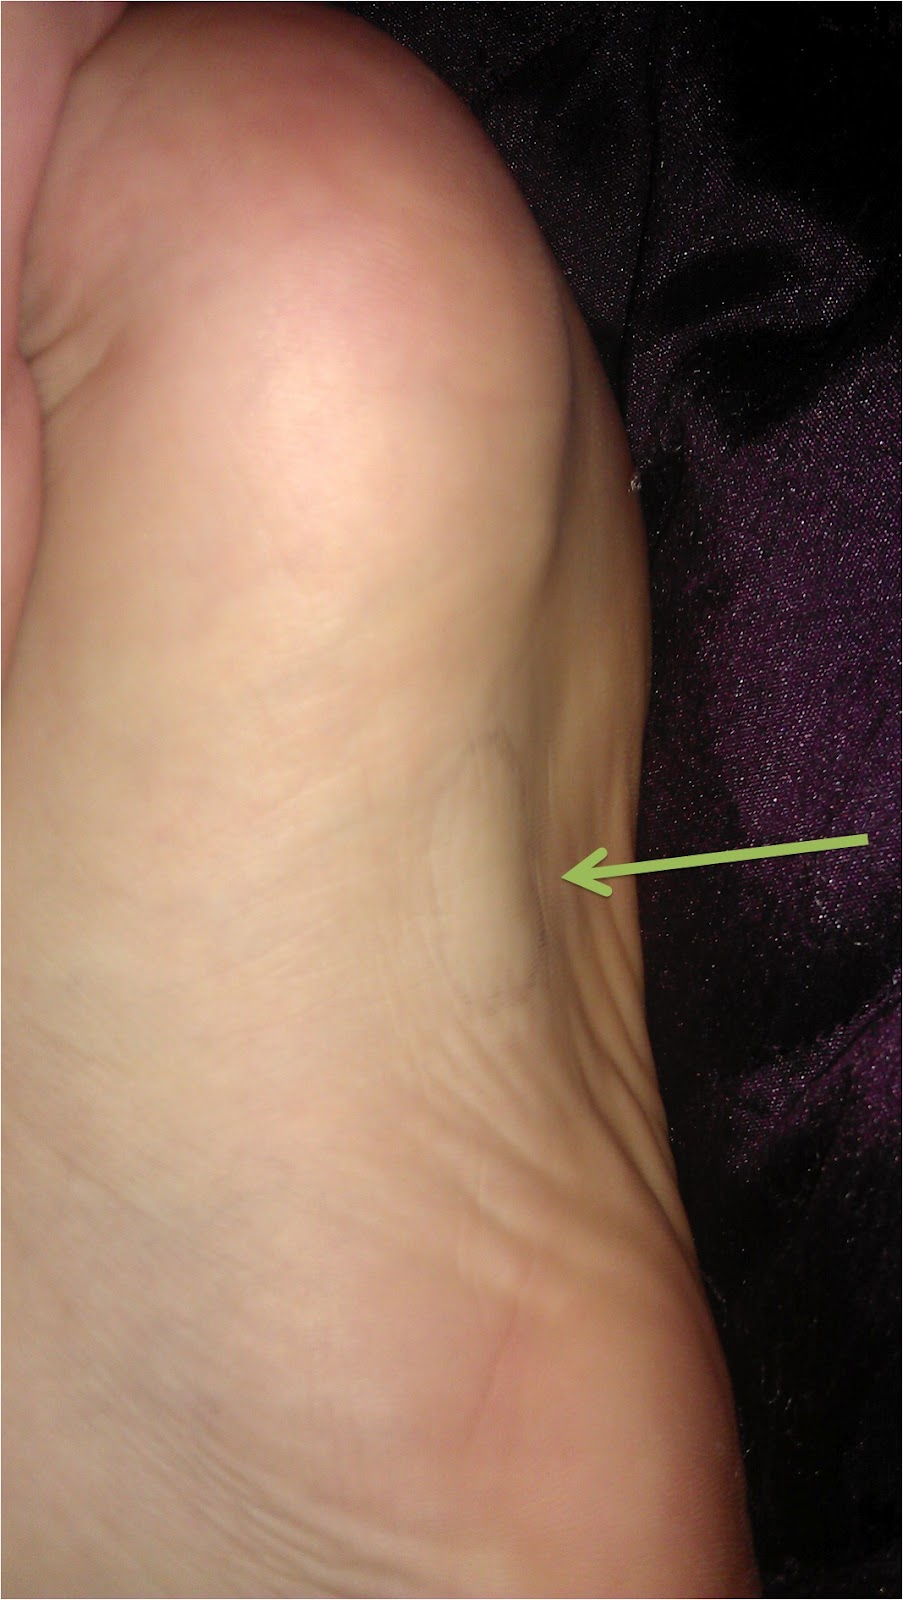 knot bottom of foot